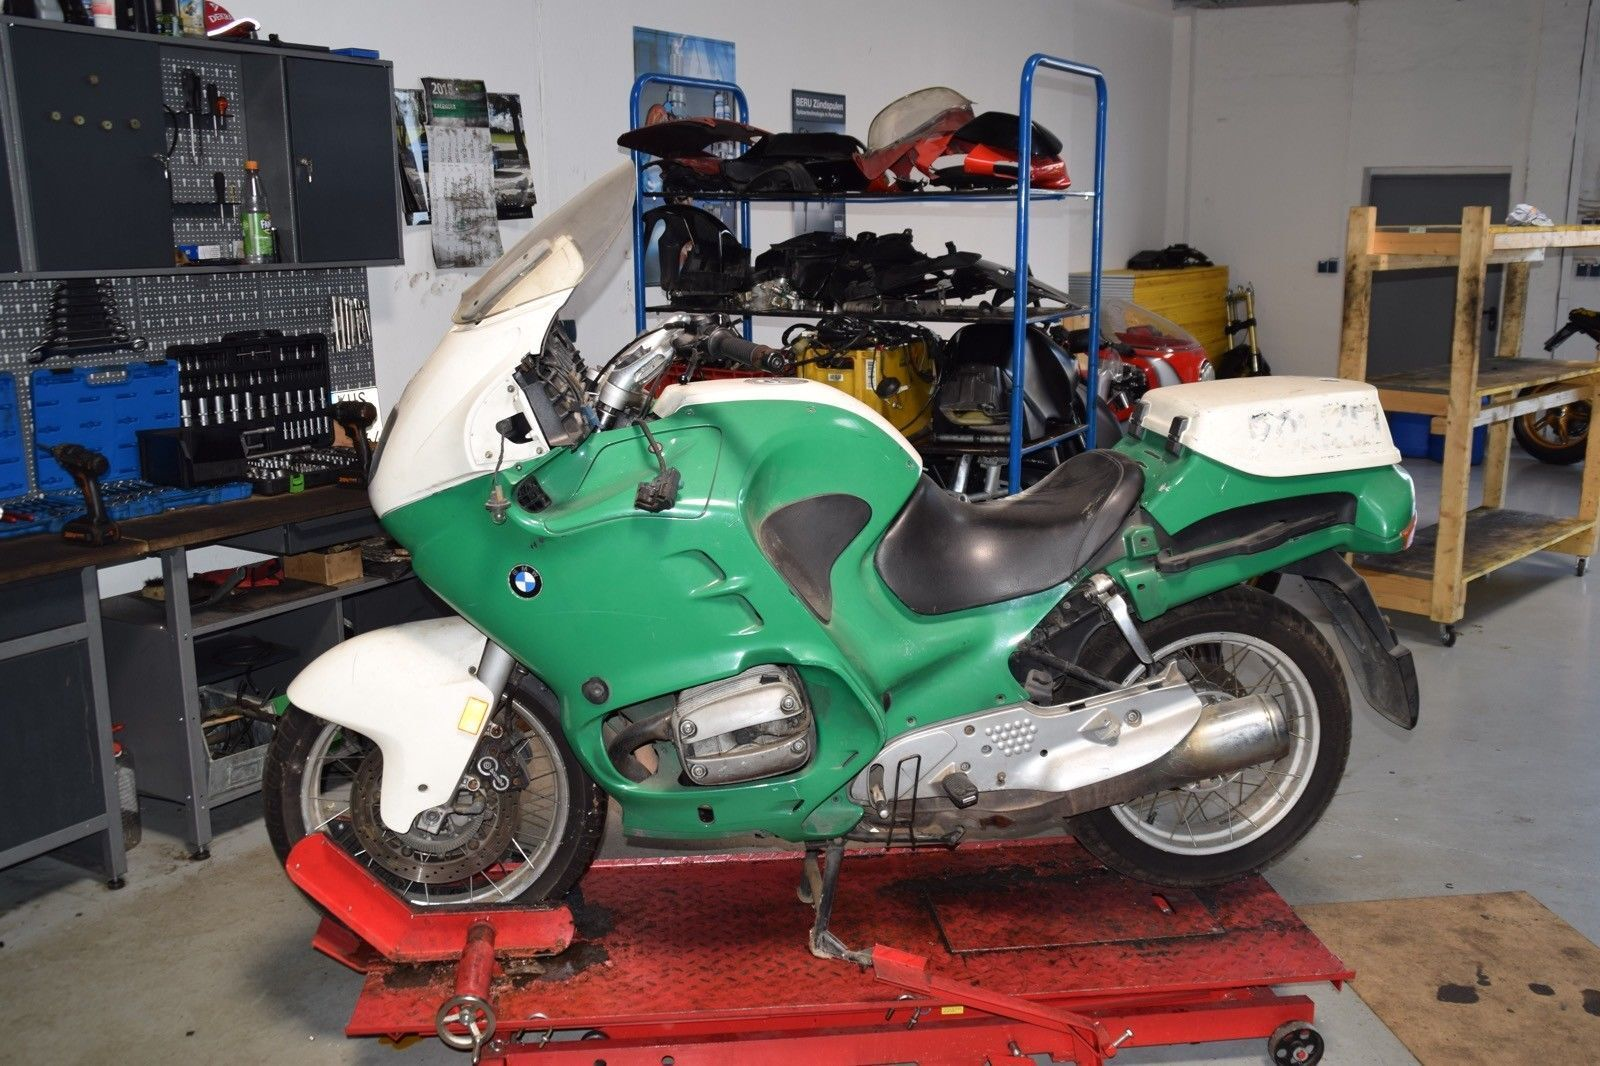 Bmw r 850 rt 259 abs bj.1994 - accouplement complet